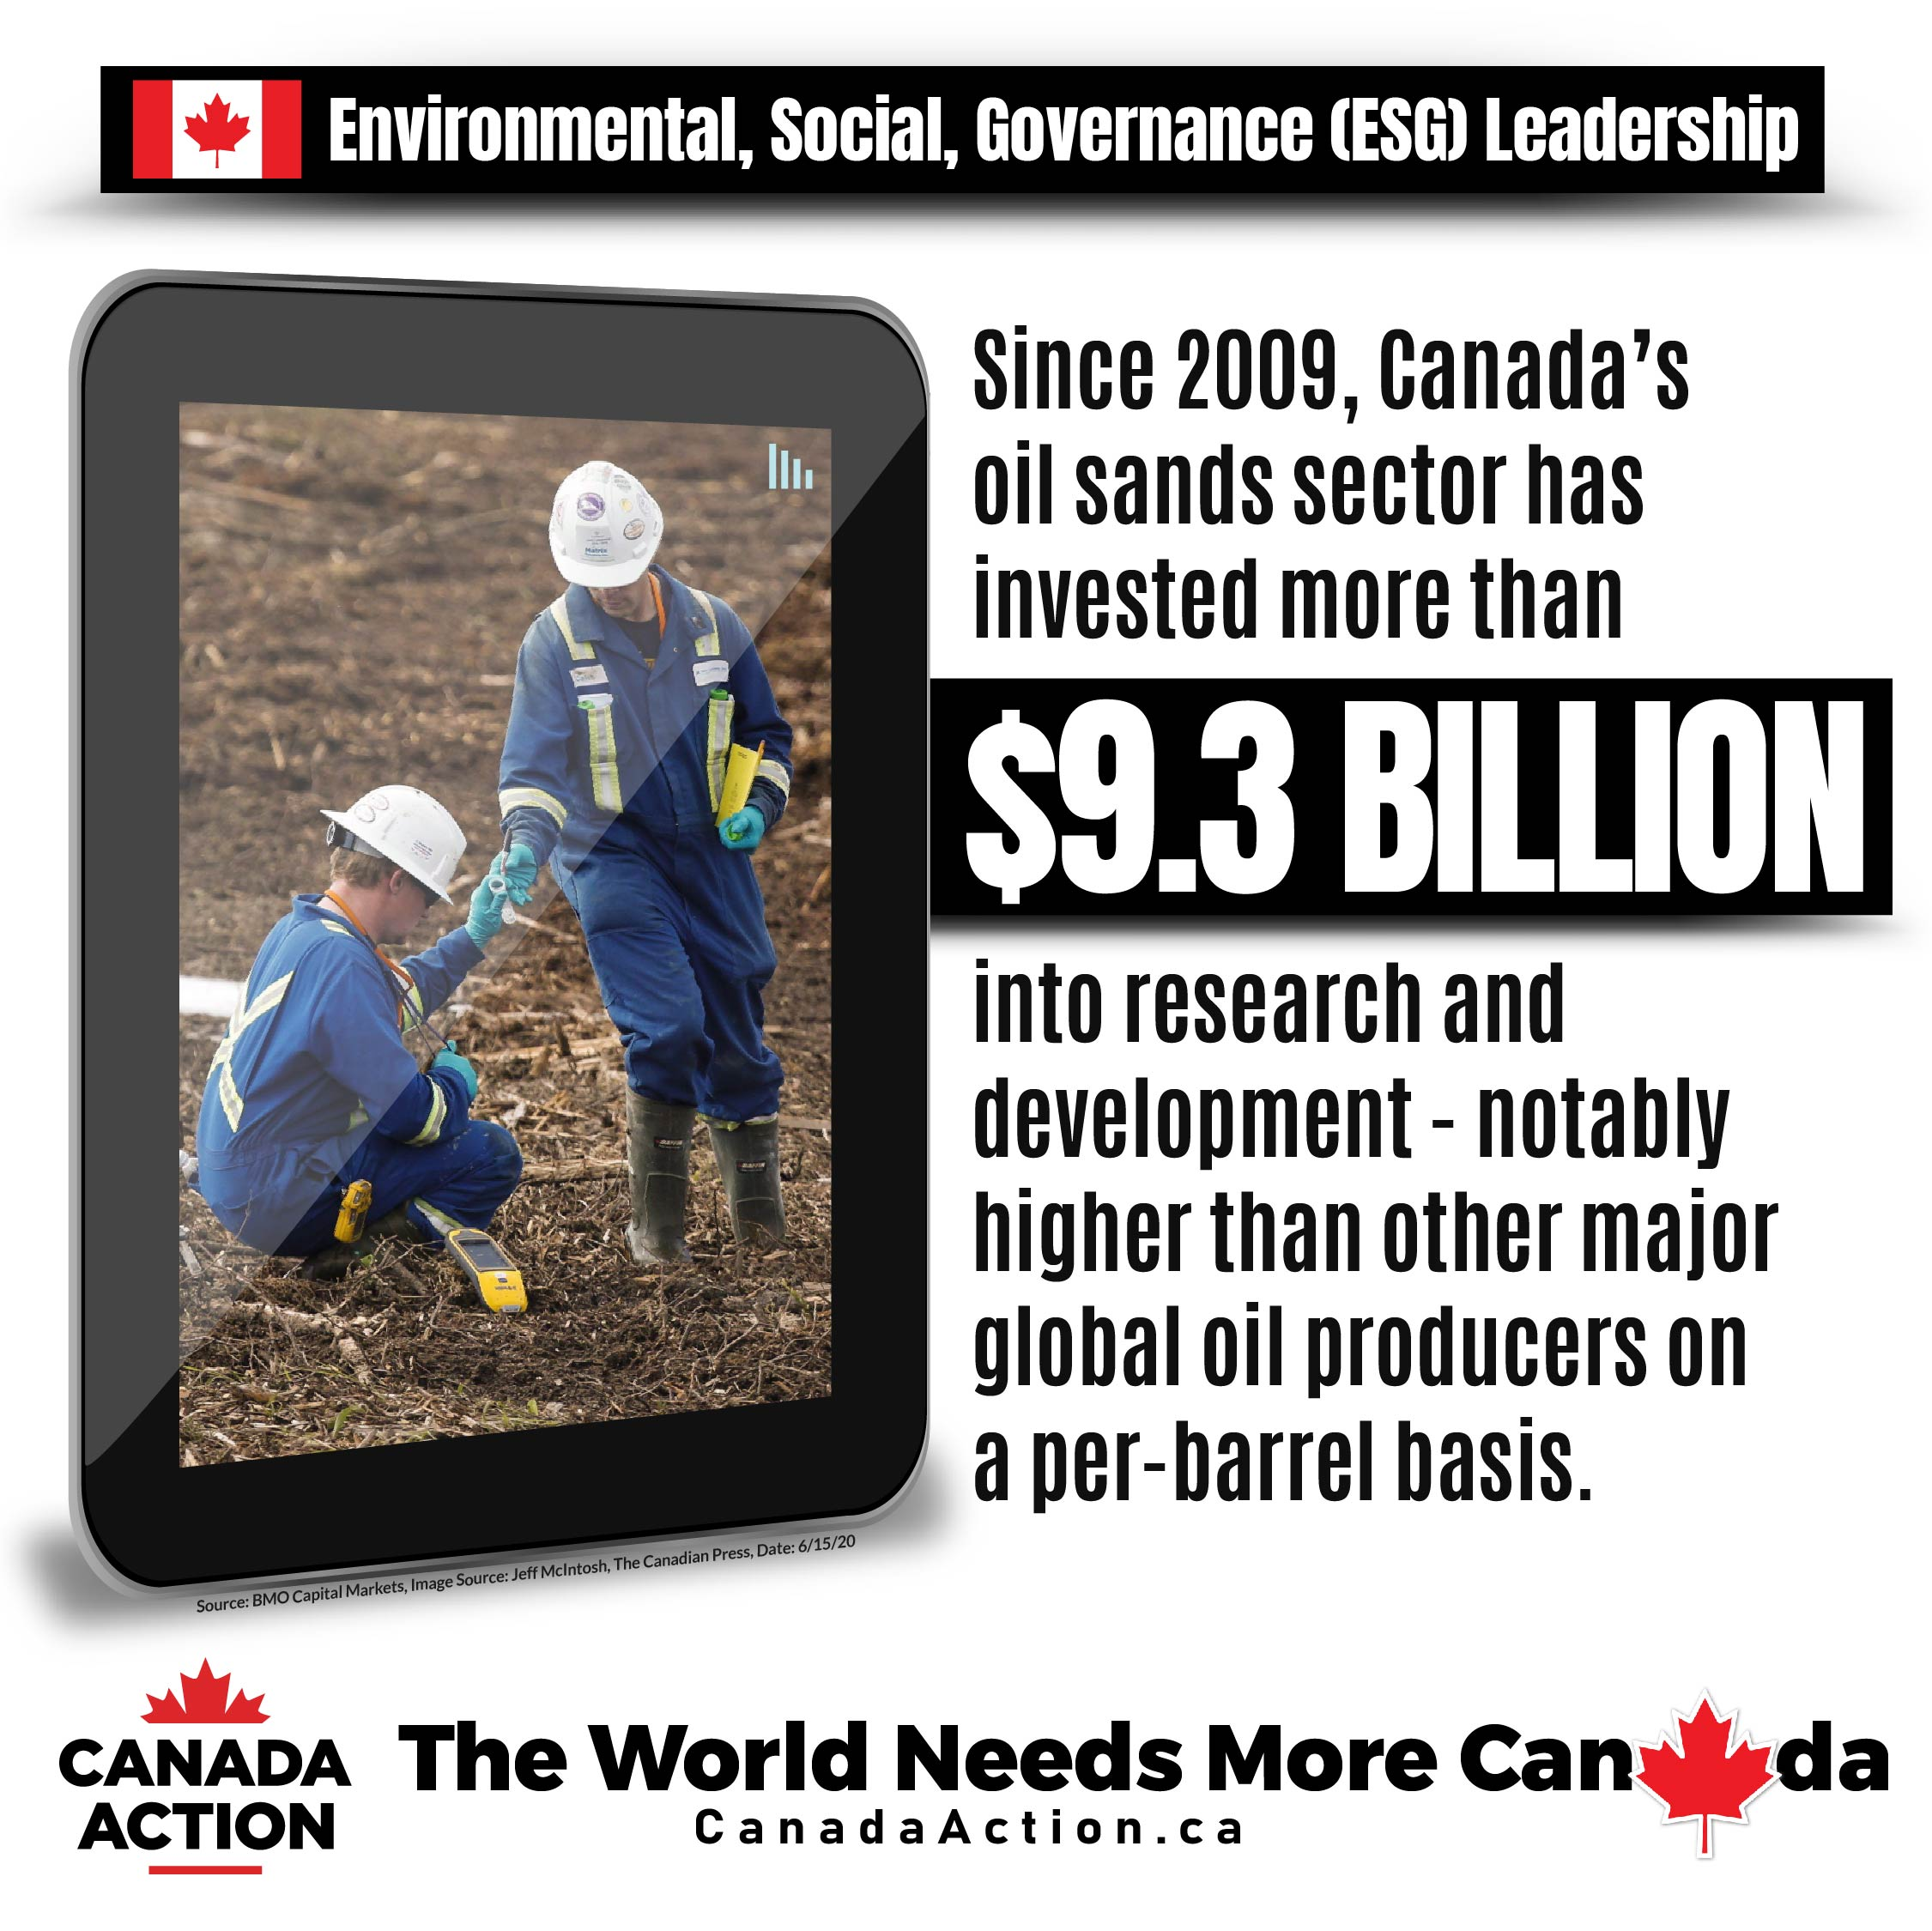 Canada's oil sands invested $9.3 billion into research and development since 2012